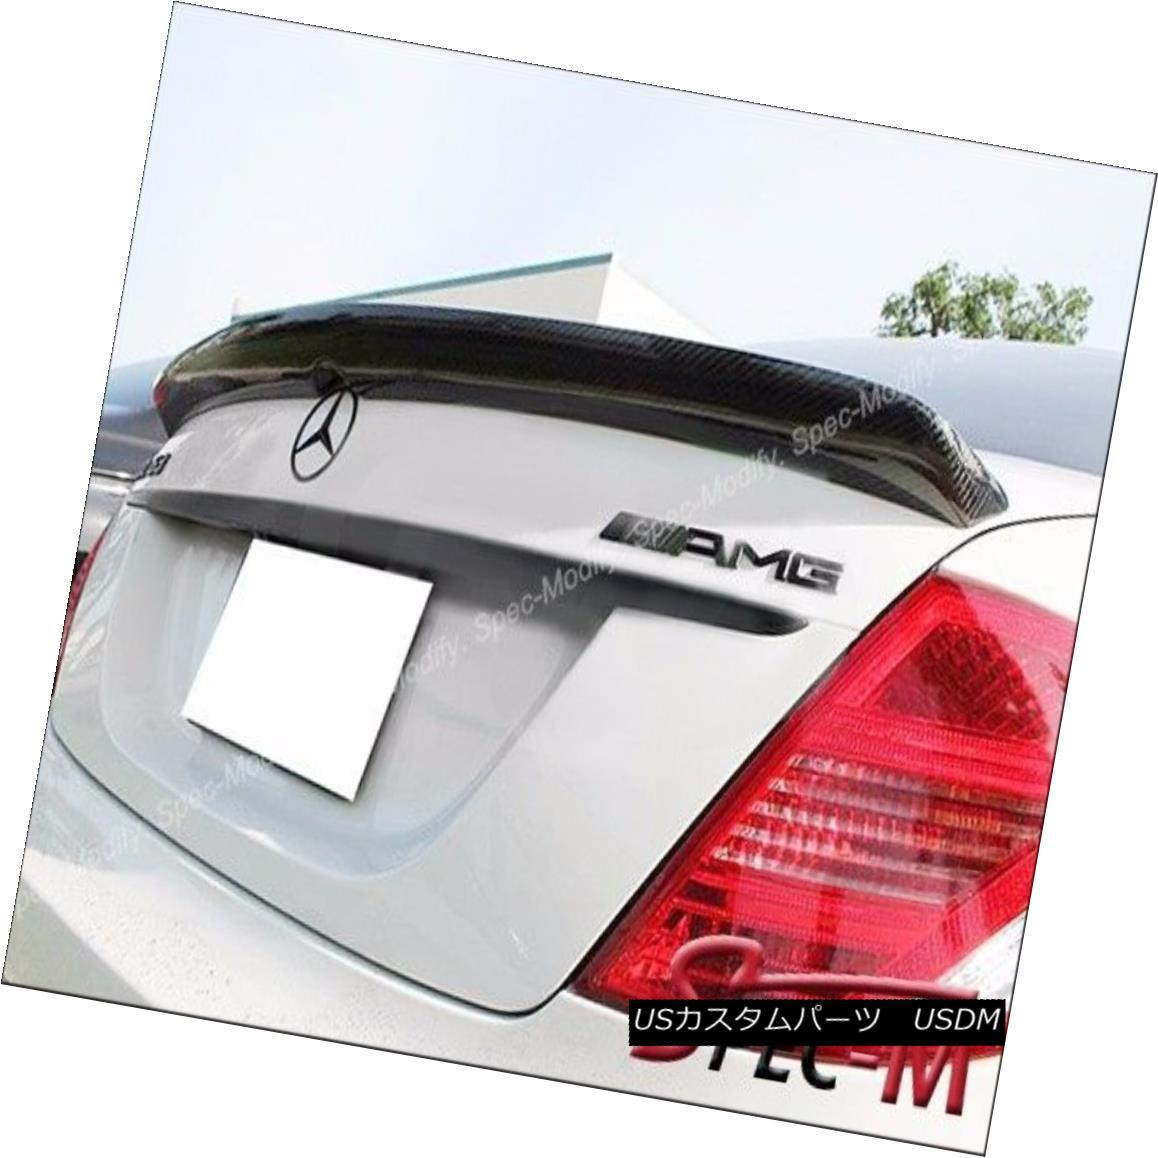 エアロパーツ DP Carbon Fiber Trunk Lip Spoiler For 2007-2013 W216 CL500 CL550 CL63 CL65 AMG DPカーボンファイバートランクリップスポイラー2007-2013 W216 CL500 CL550 CL63 CL65 AMG